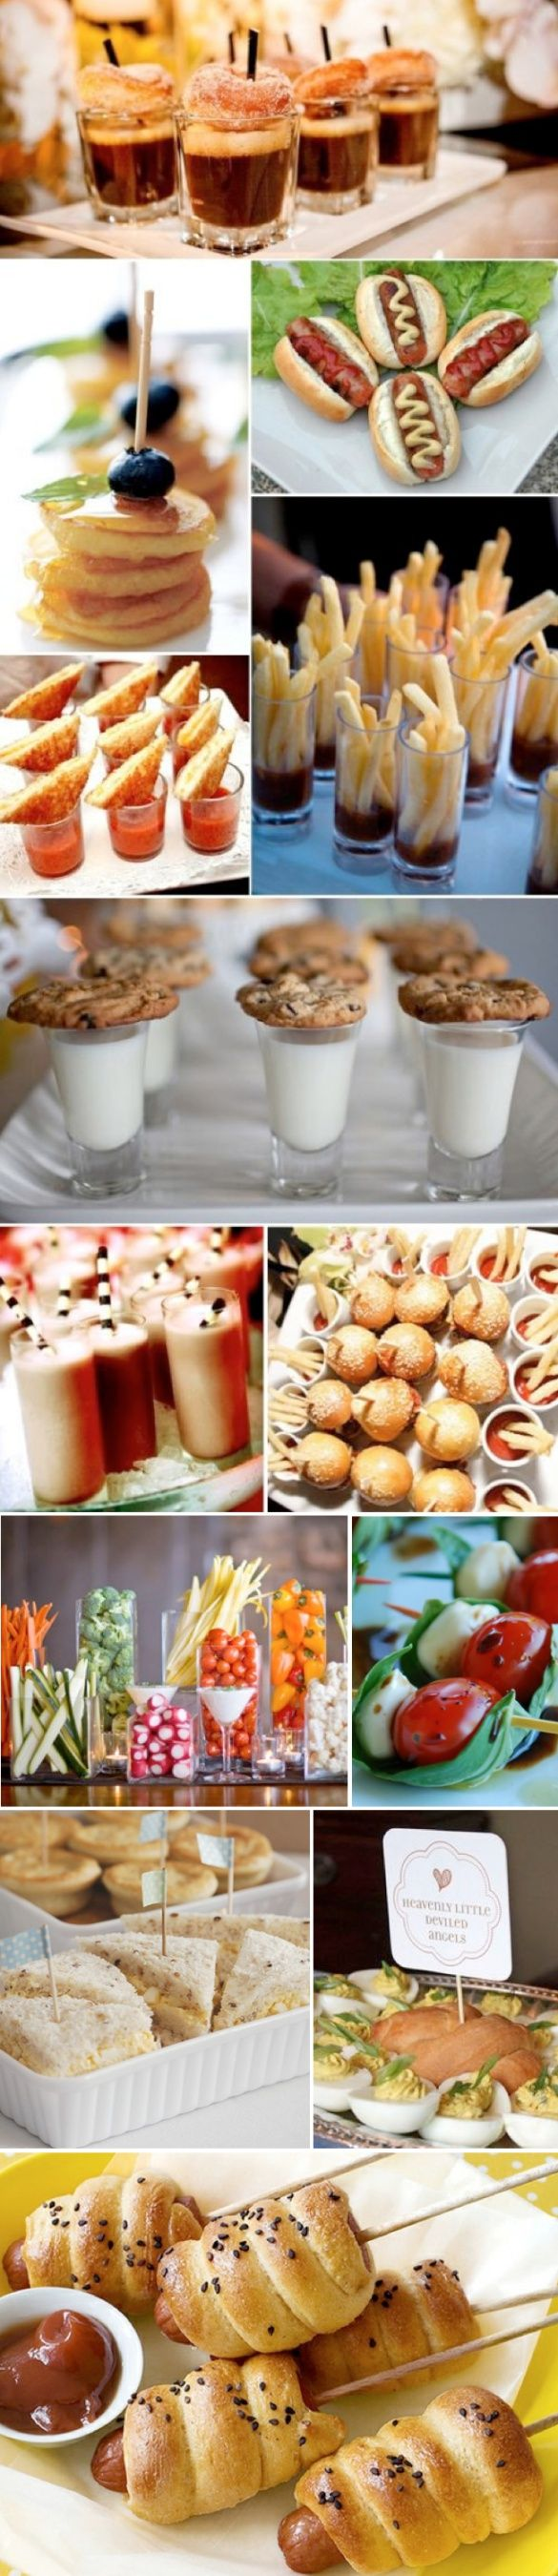 finger food ideas